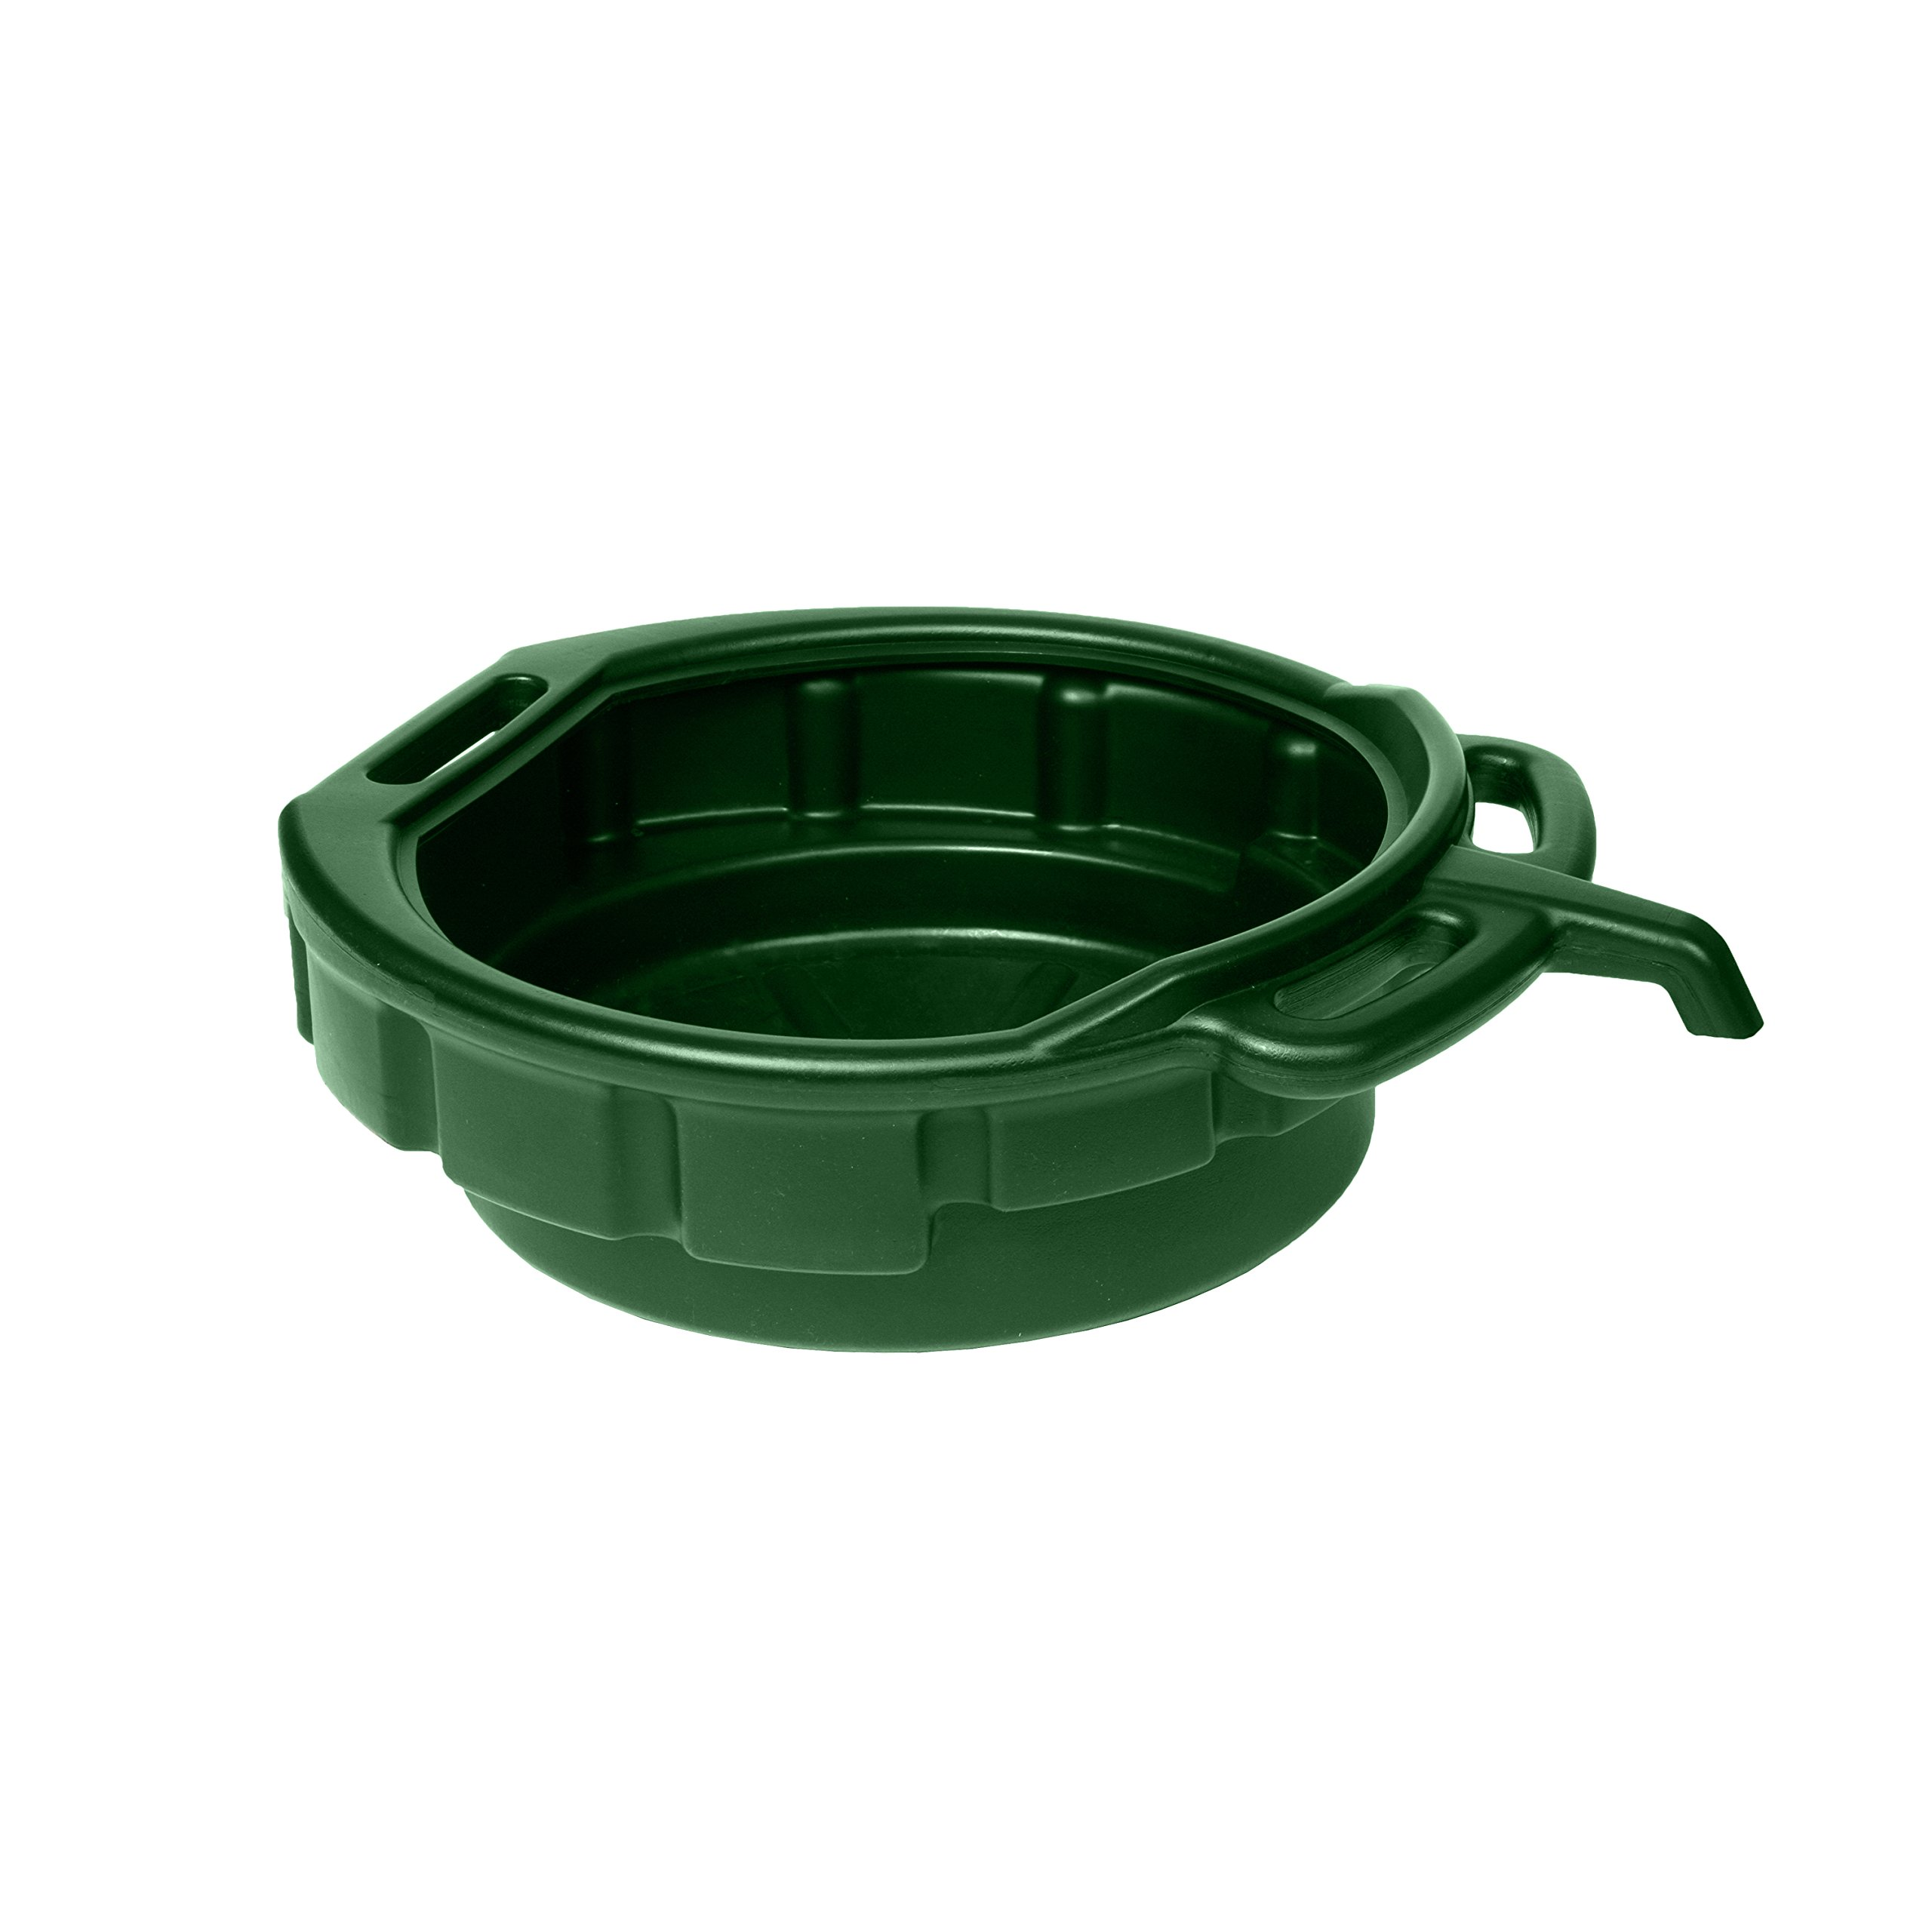 WirthCo 32955 Funnel King Green Oil/Coolant Drain Pan with E-Z Grip Handle and Pour Spout - 4 Gallon